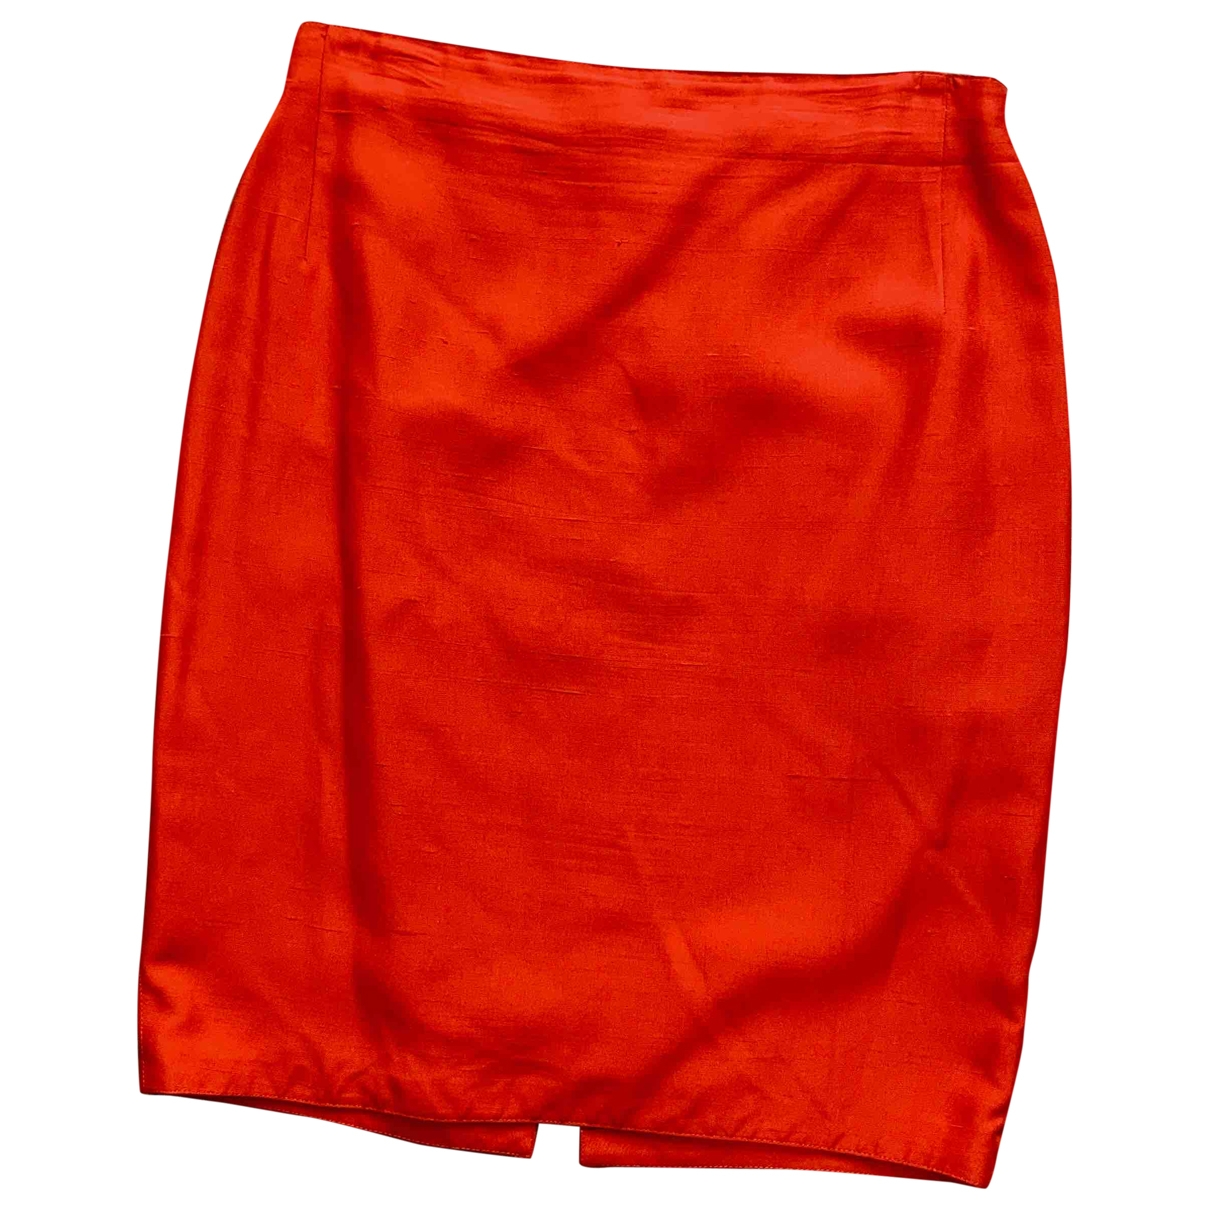 Gianni Versace \N Red Silk skirt for Women 44 IT